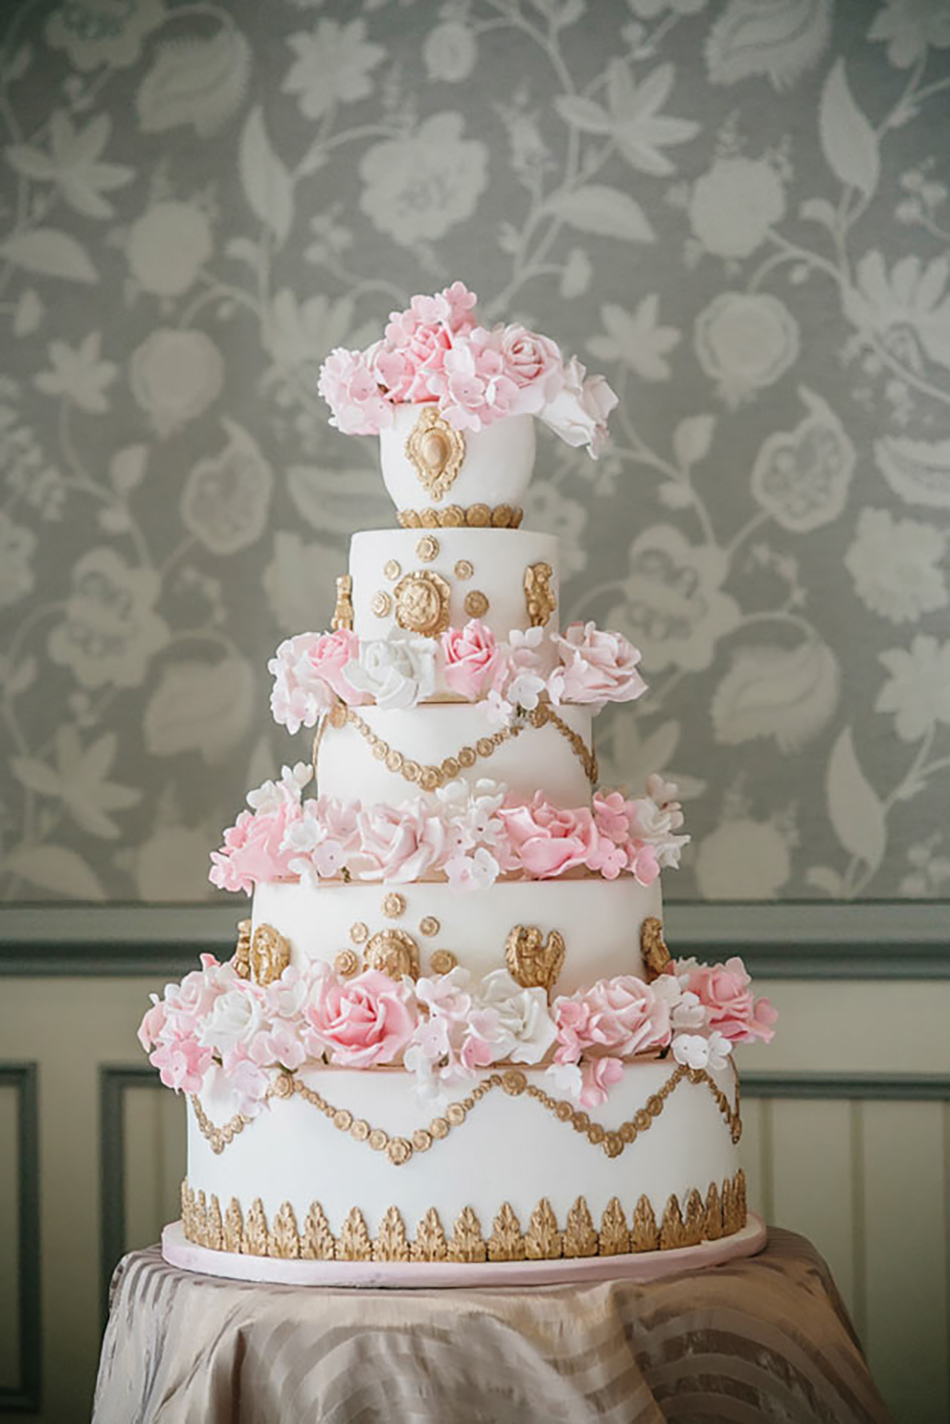 Wedding ideas by colour: pastel pink wedding cakes - Hint of gold | CHWV